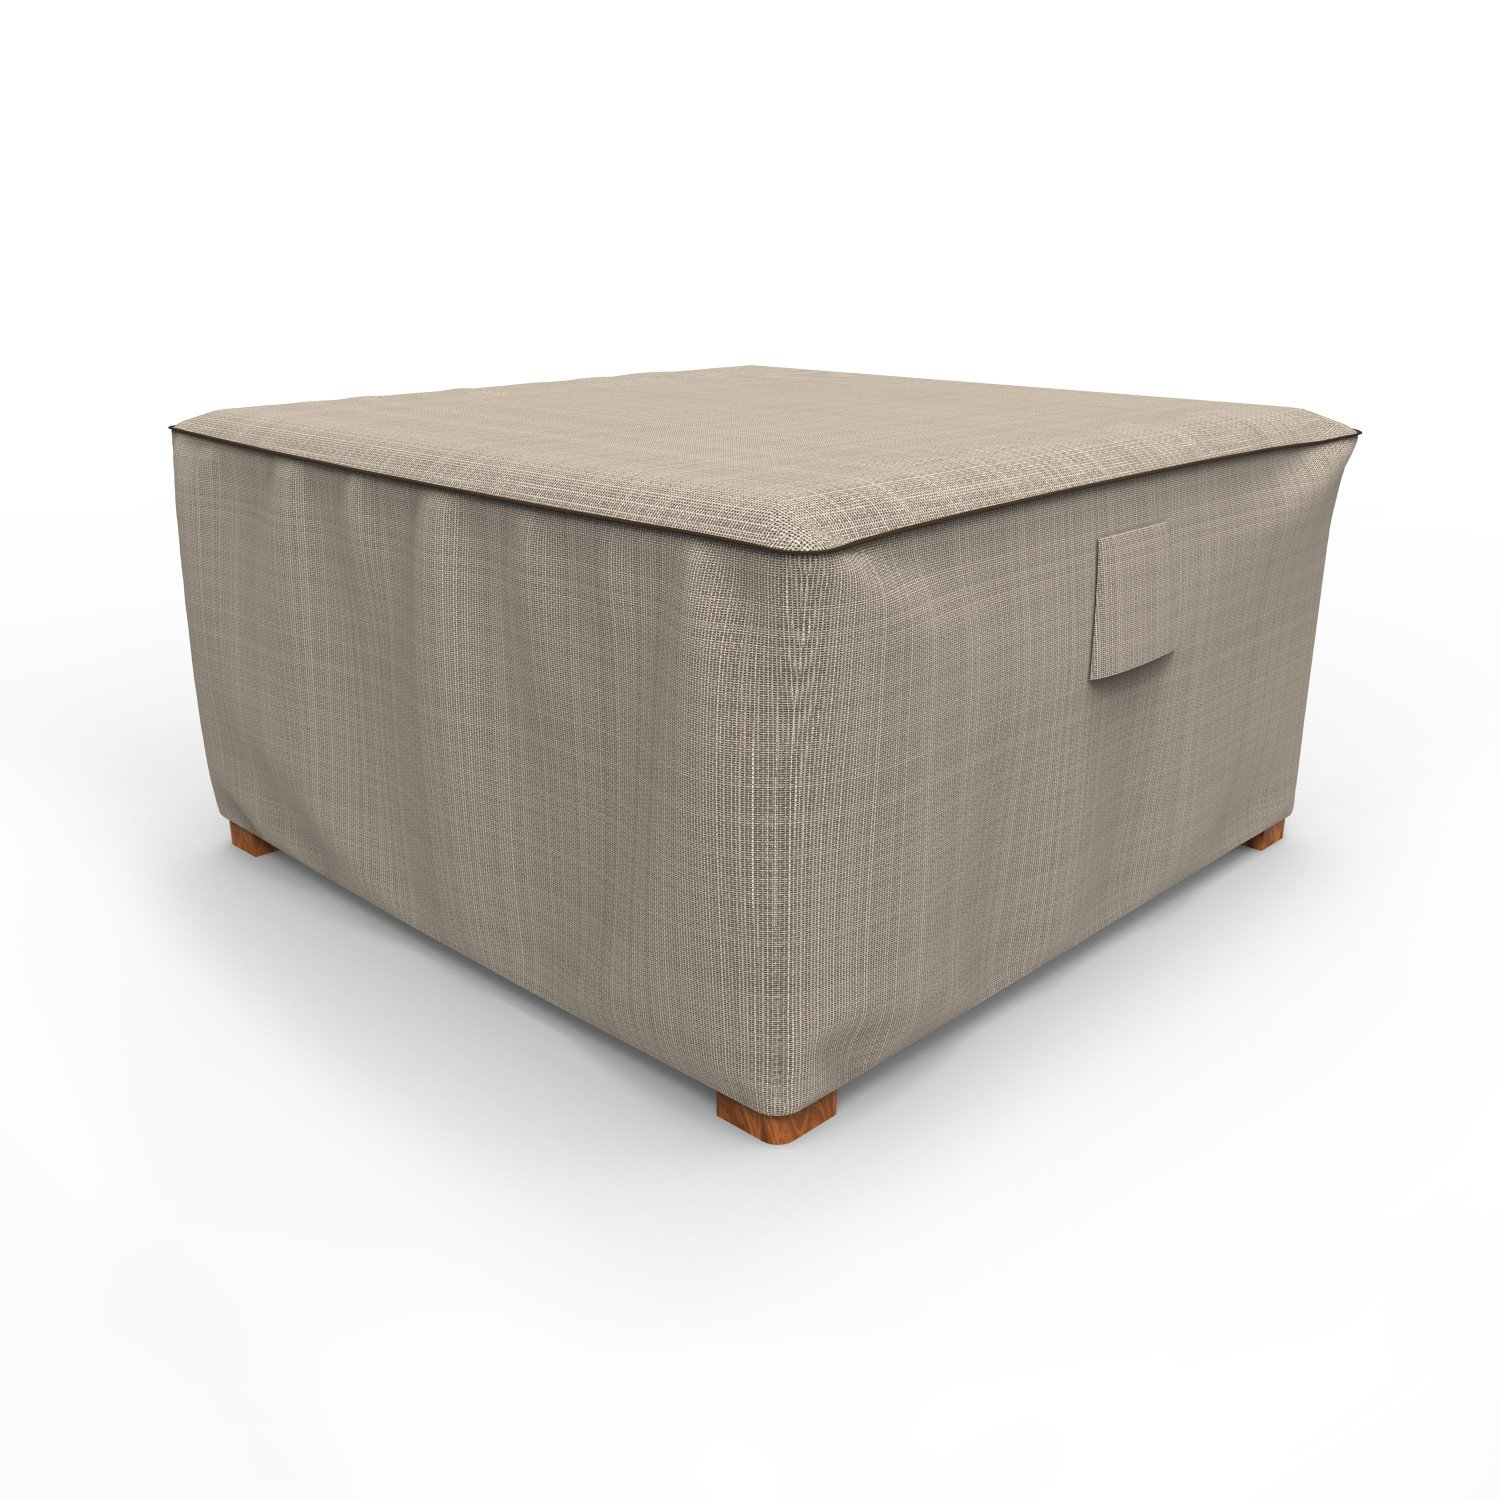 Budge P4A02PMNW2 NeverWet Mojave Square Patio Table/Ottoman Cover, Extra-Large, Black Ivory